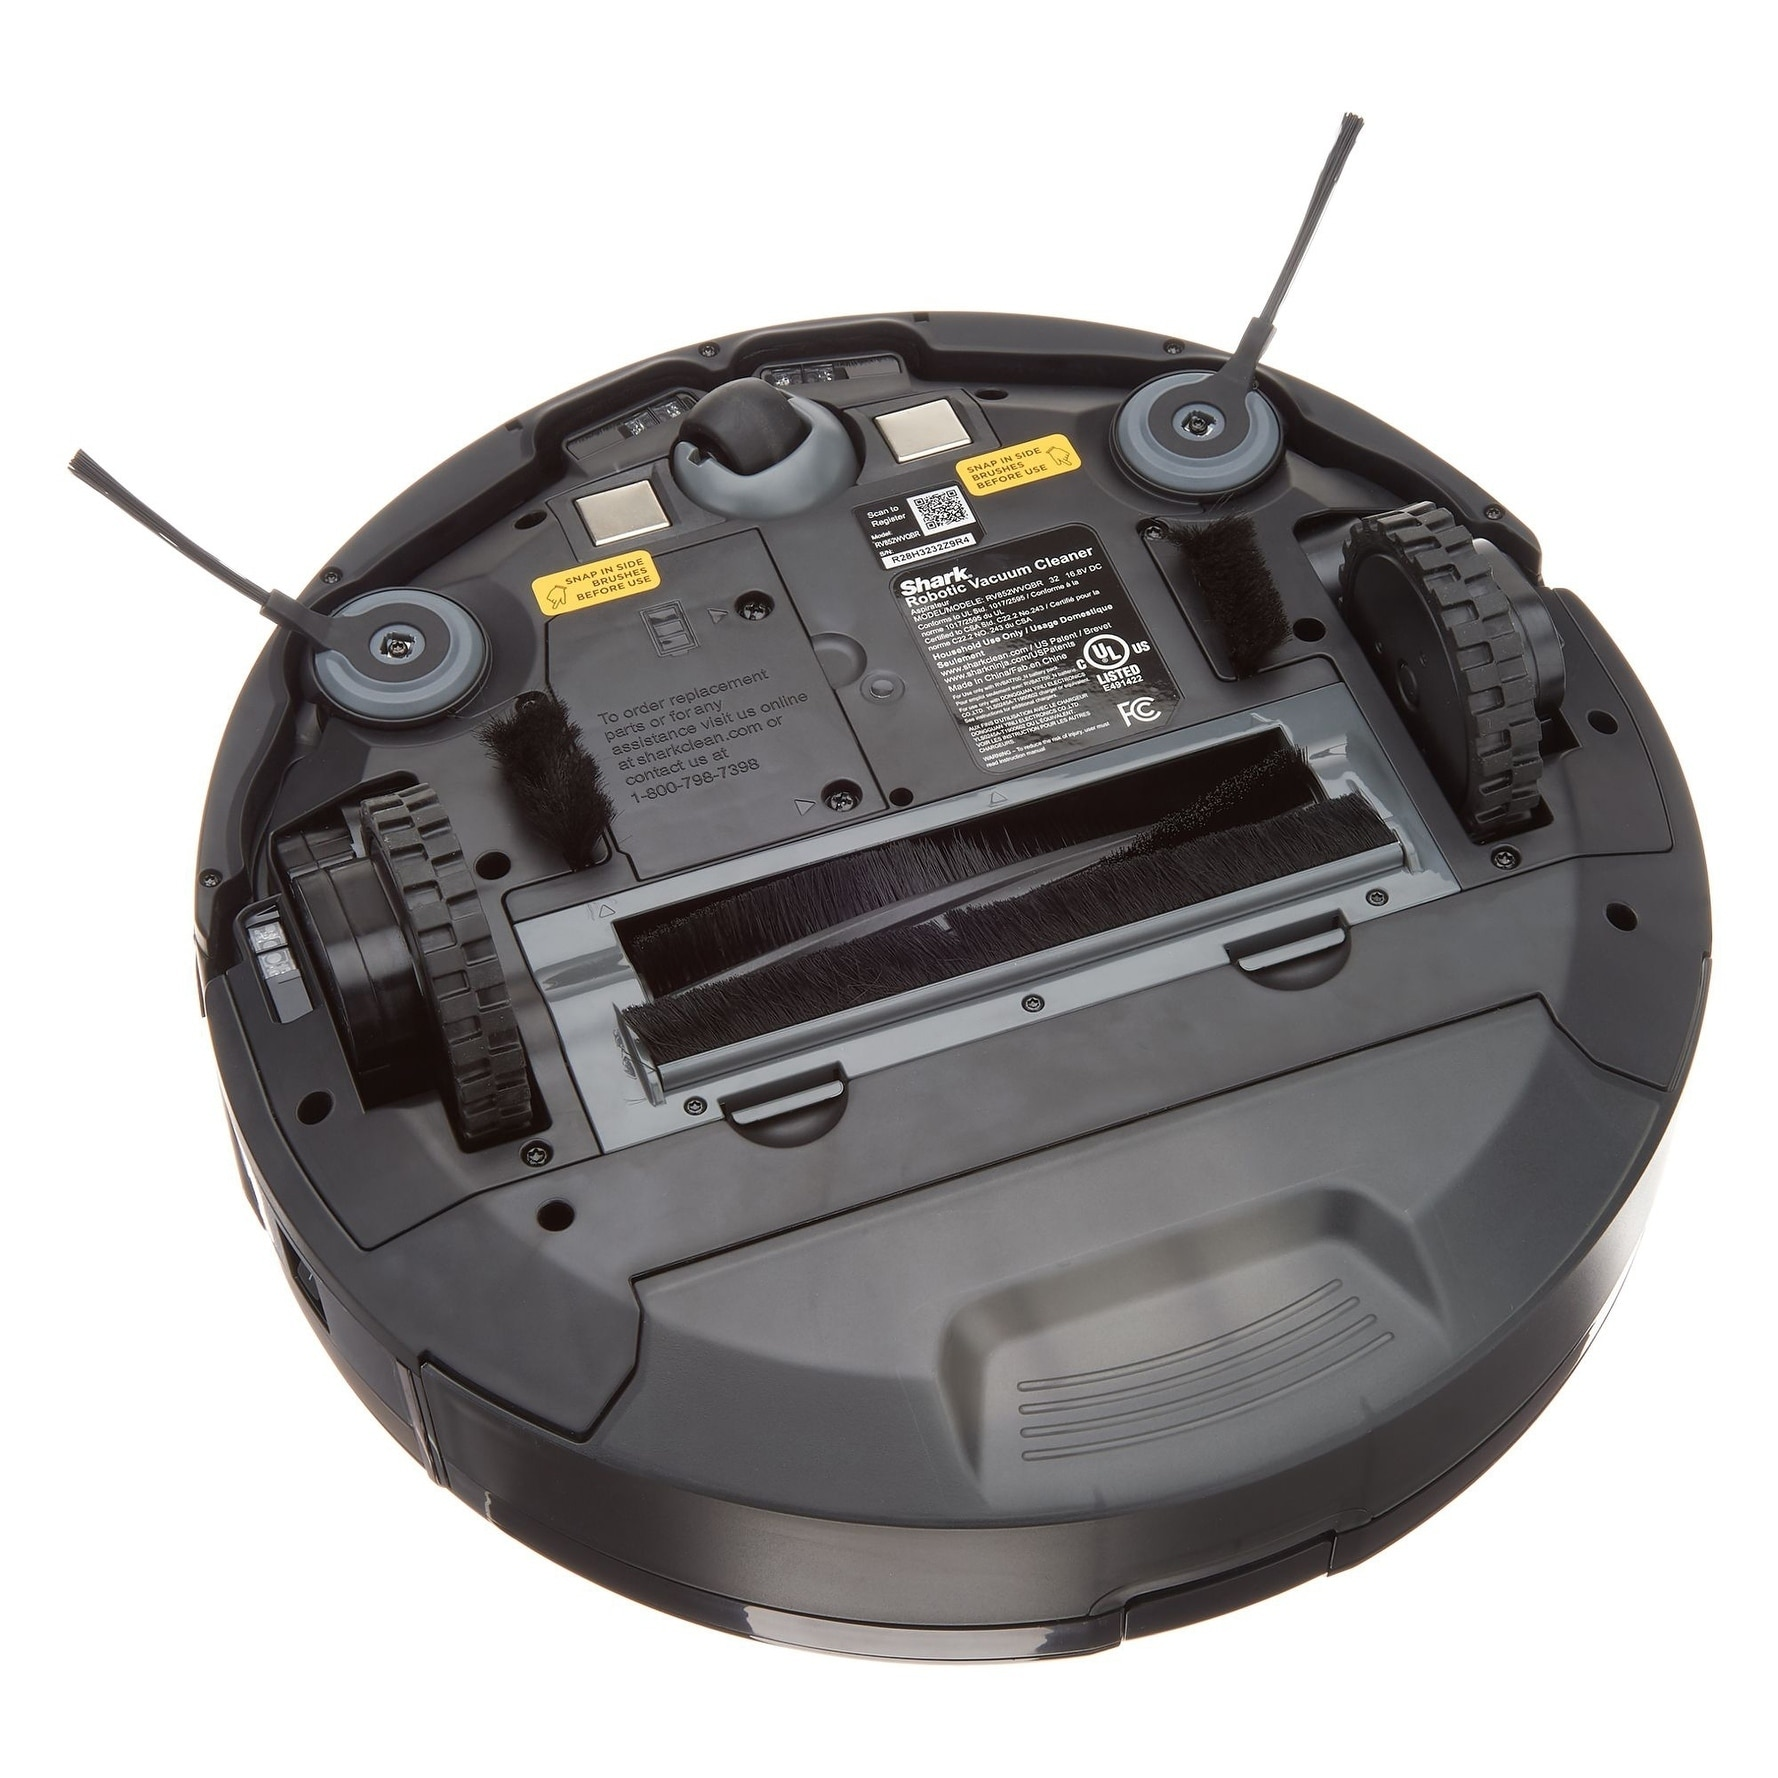 59070e5136bc Shop SHARK ION™ Robot Vacuum Cleaning System S87 with Wi-Fi - Free Shipping  Today - Overstock - 25481167